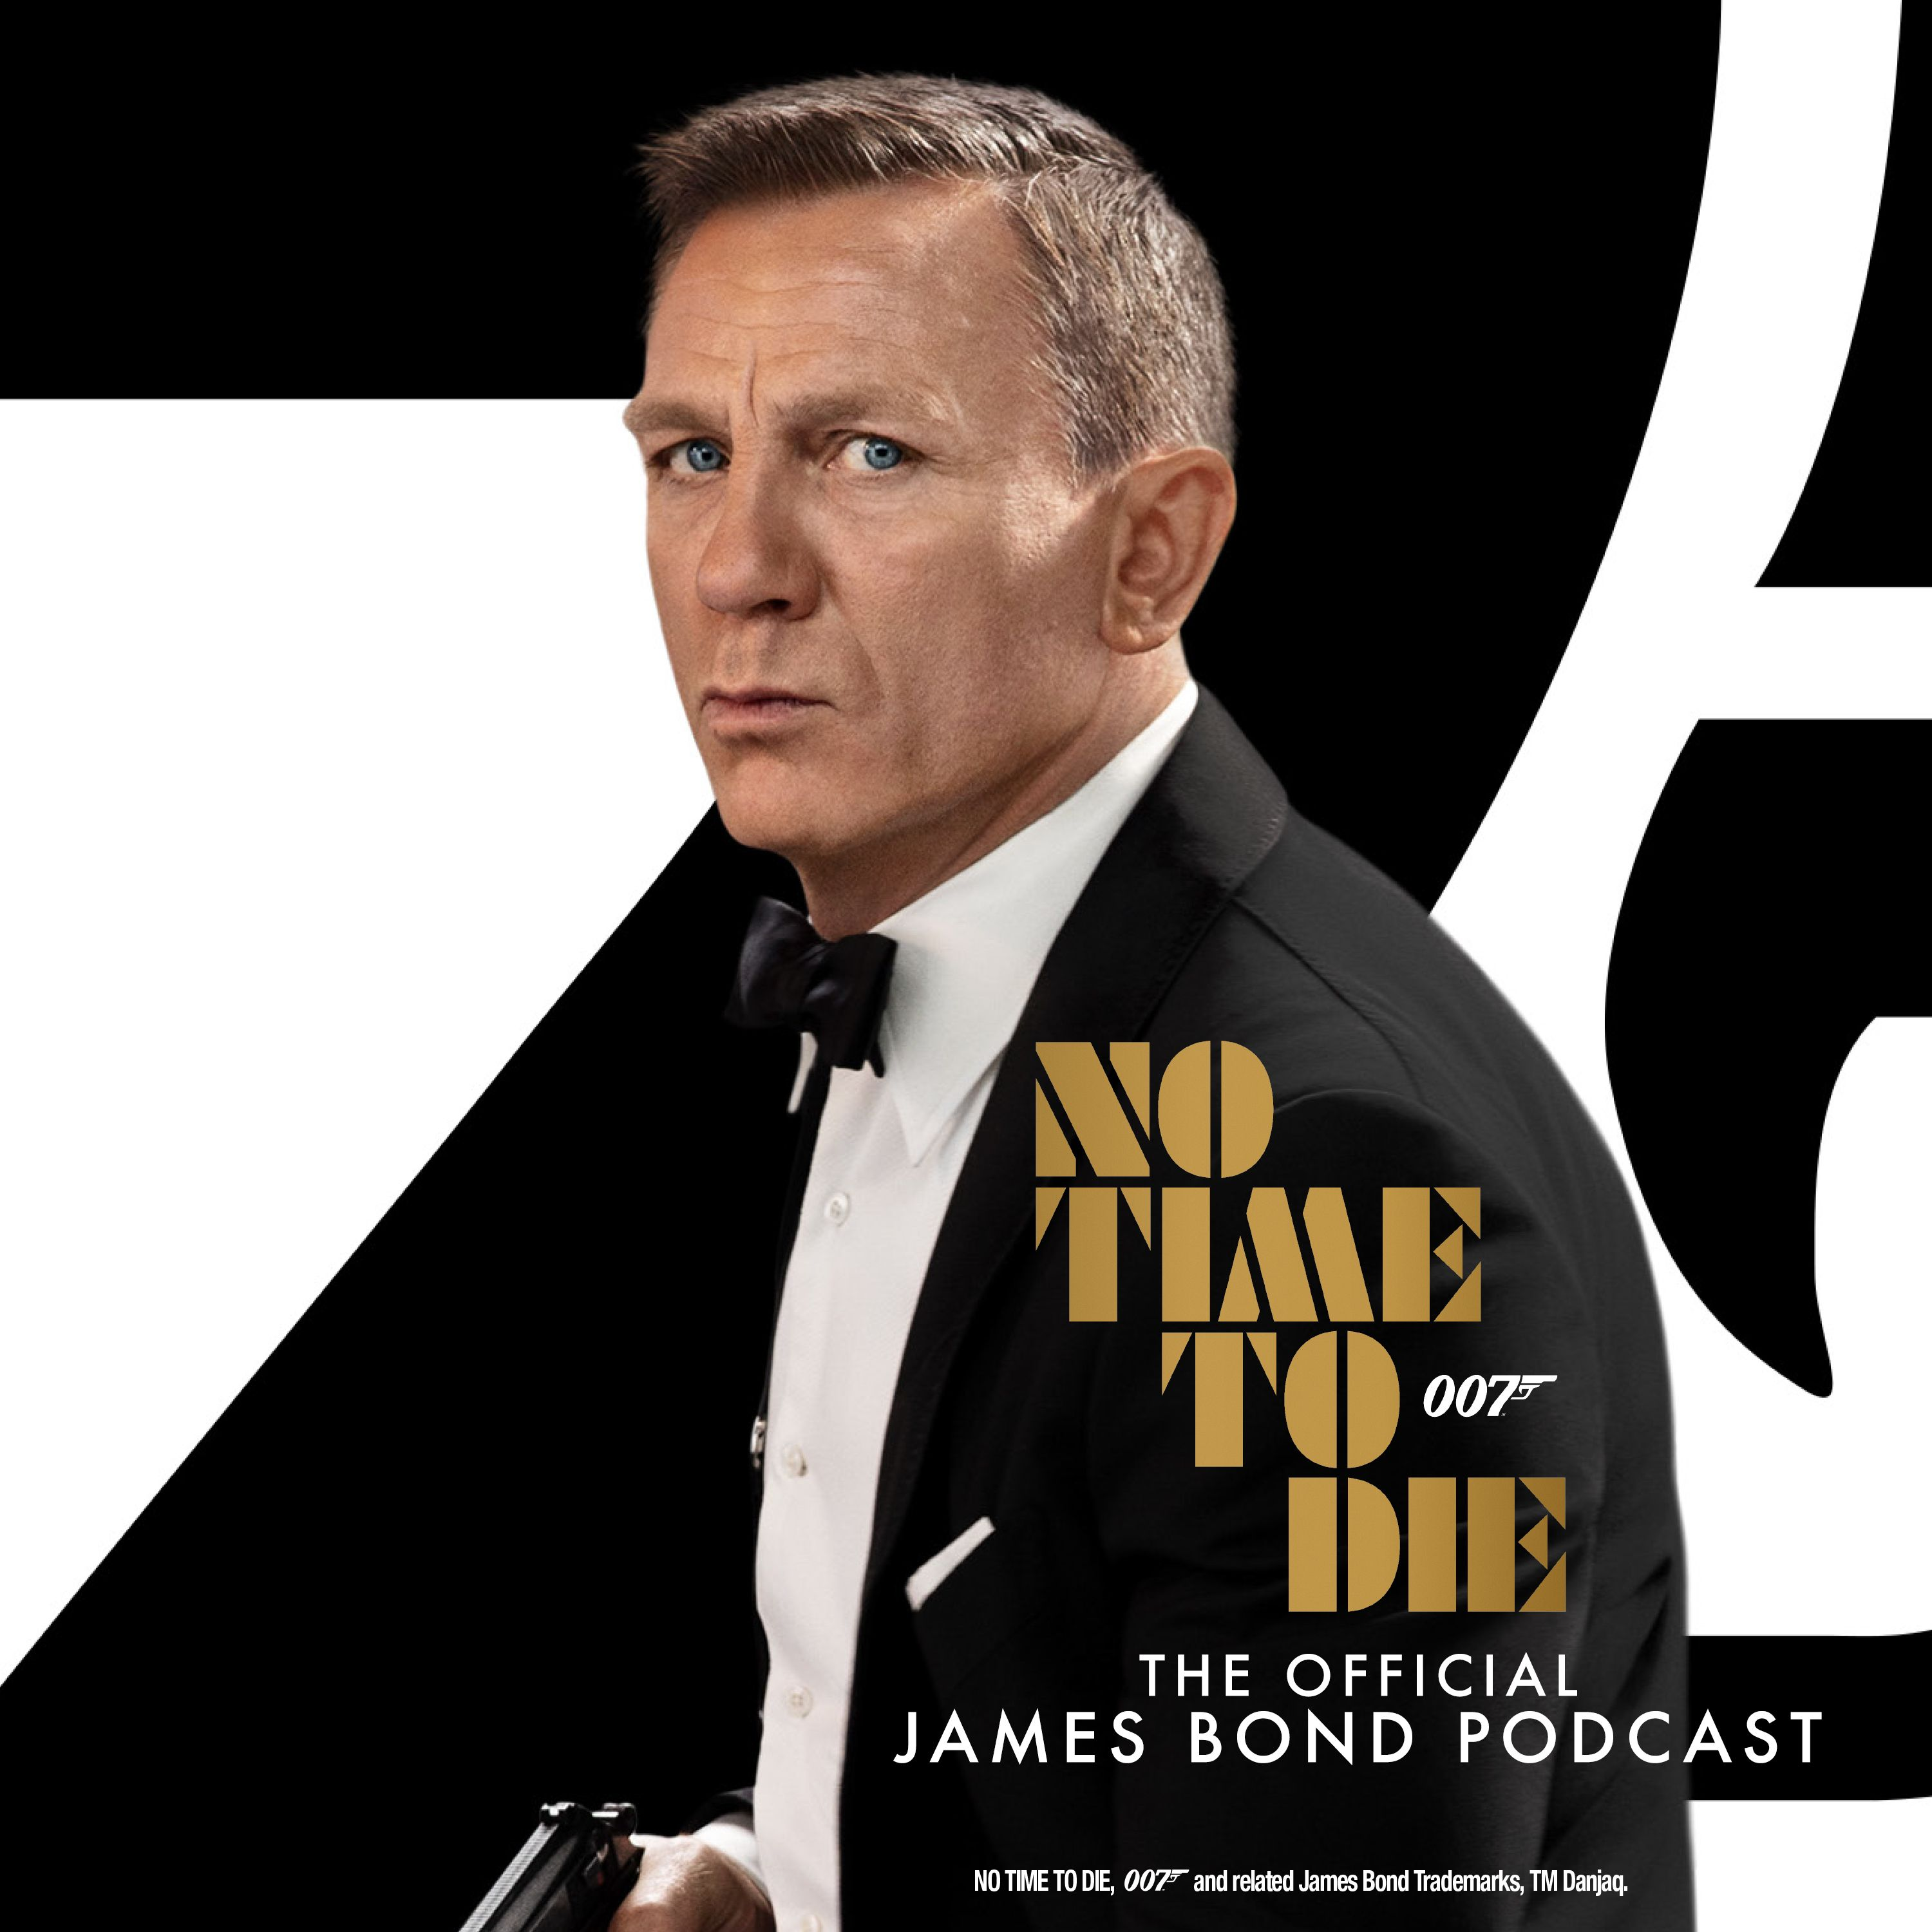 No Time To Die Podcast Update